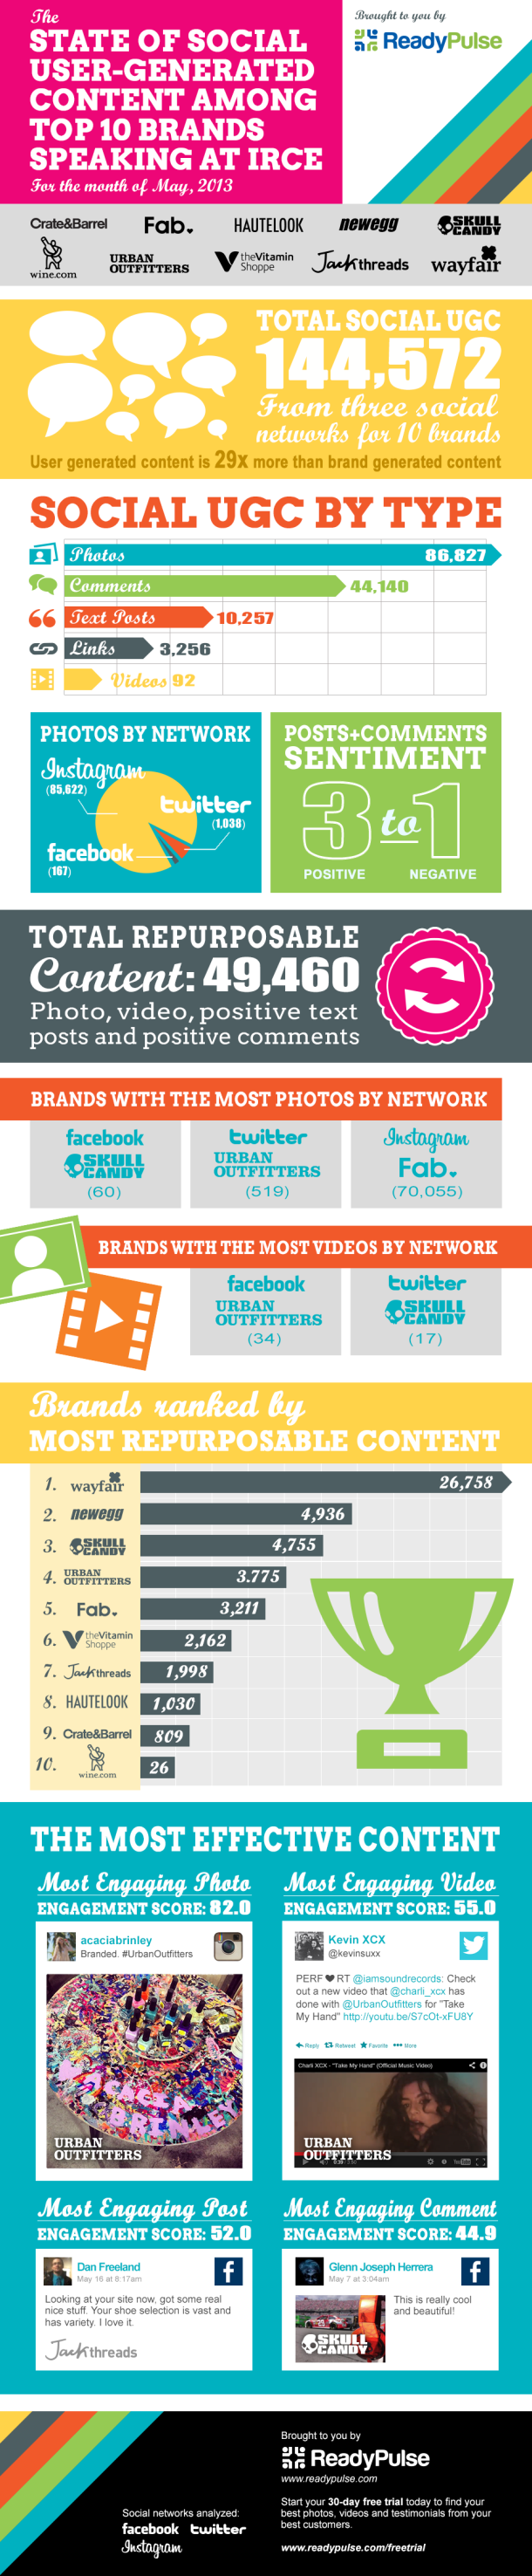 The State Of Social User generated Content Among